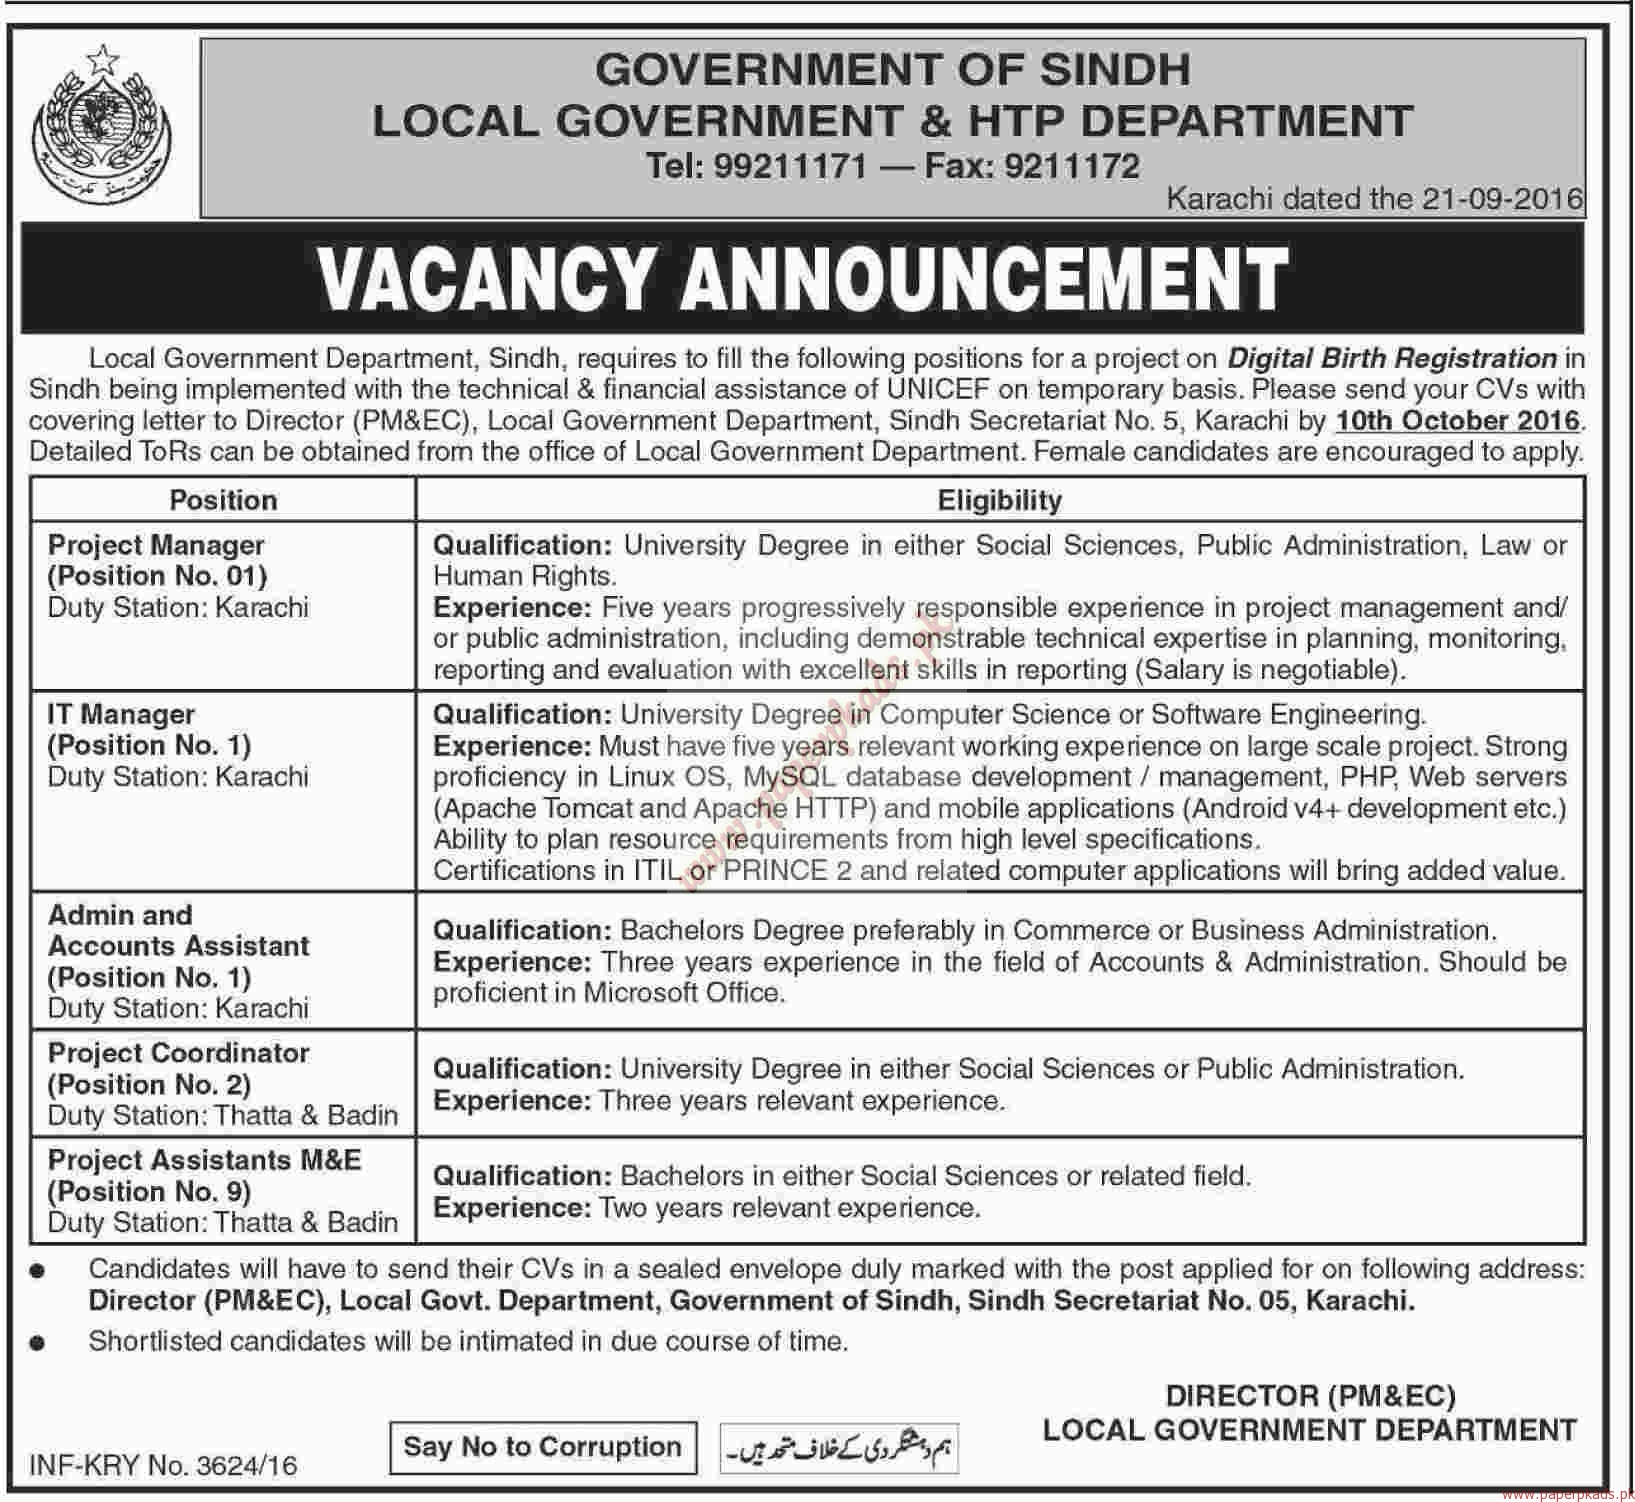 Government Jobs Upload Resume Government Of Sindh Local Government And Htp Department